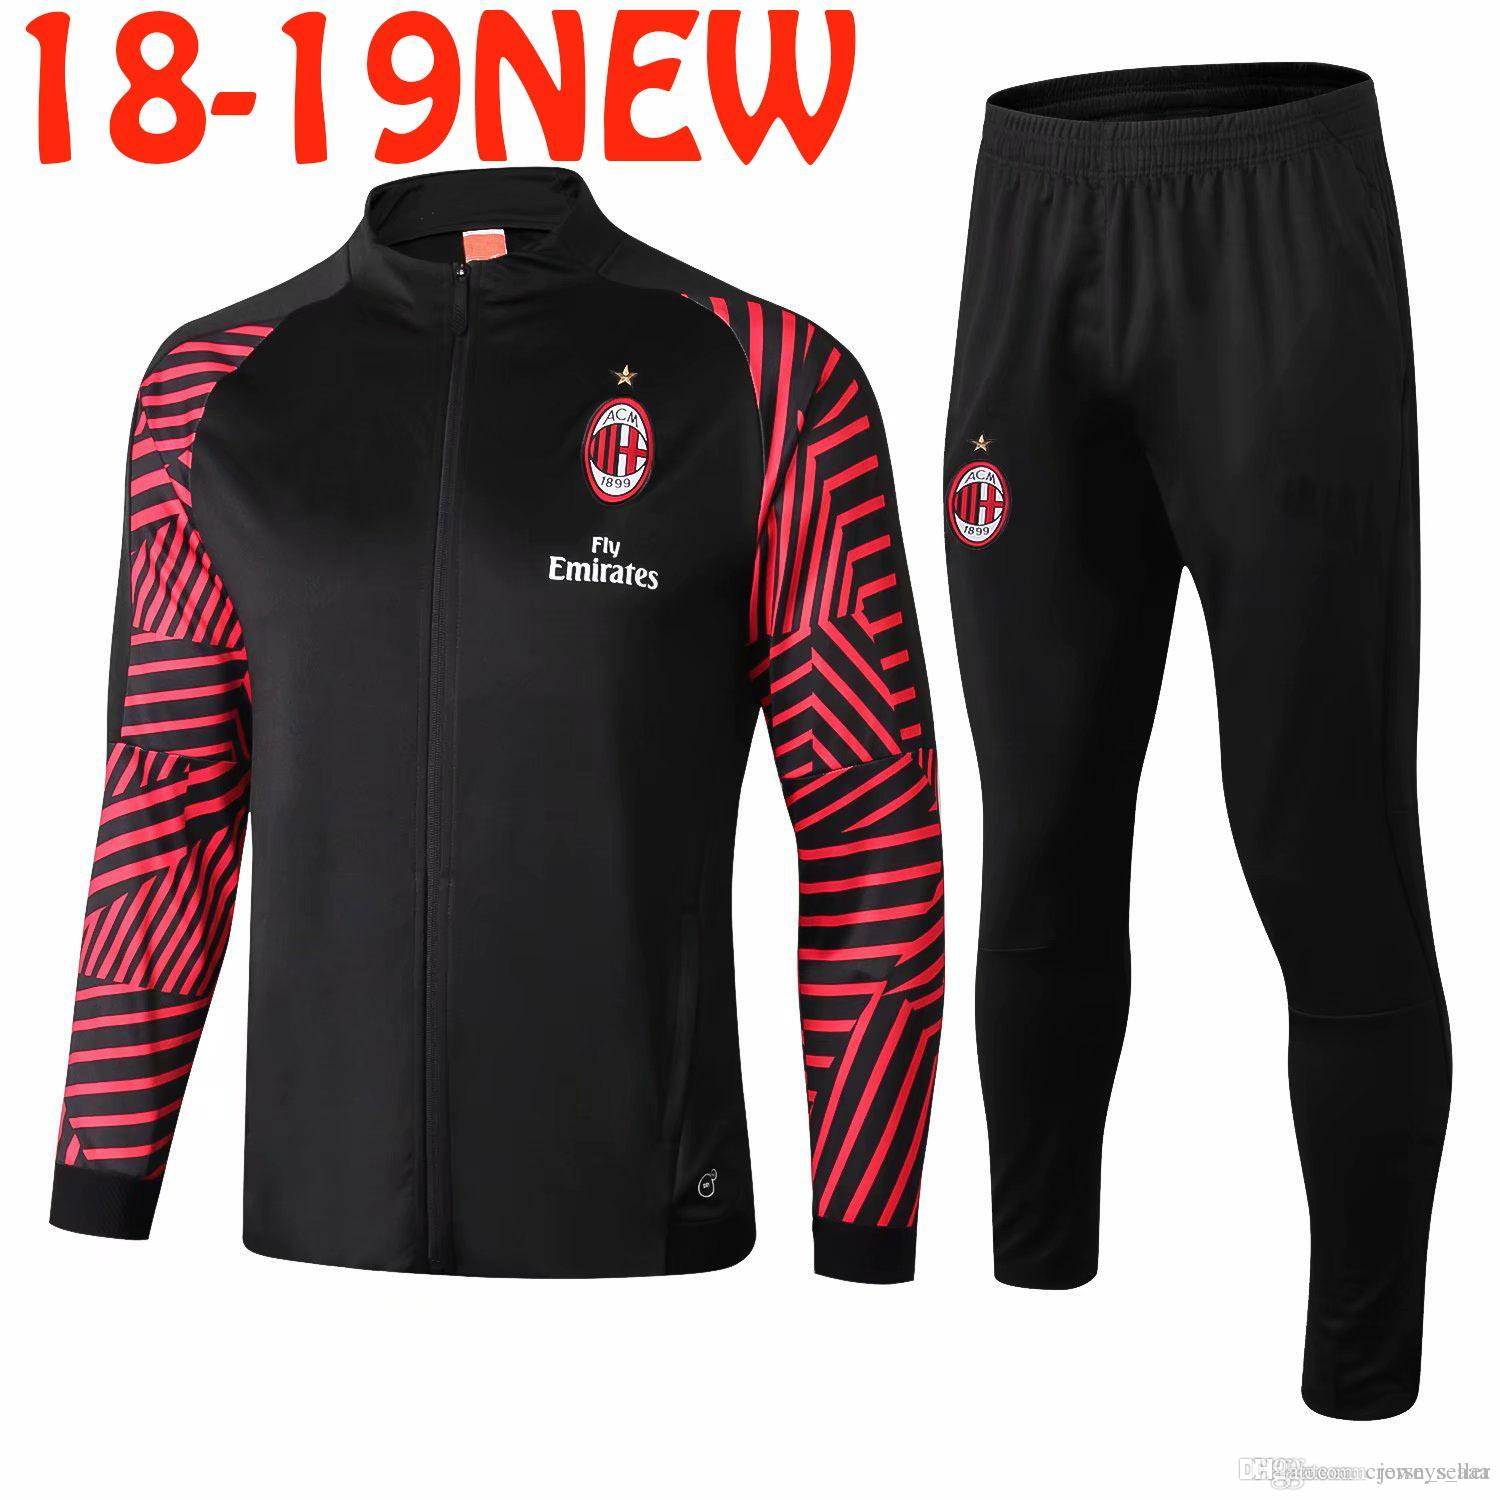 100% authentic b35f1 fde65 18 19 Serie A Juventus FC Home Away Soccer Tracksuit Set Kit AS Roma AC  Milans Inter Football Jacket Training Suit Survetement Chandal